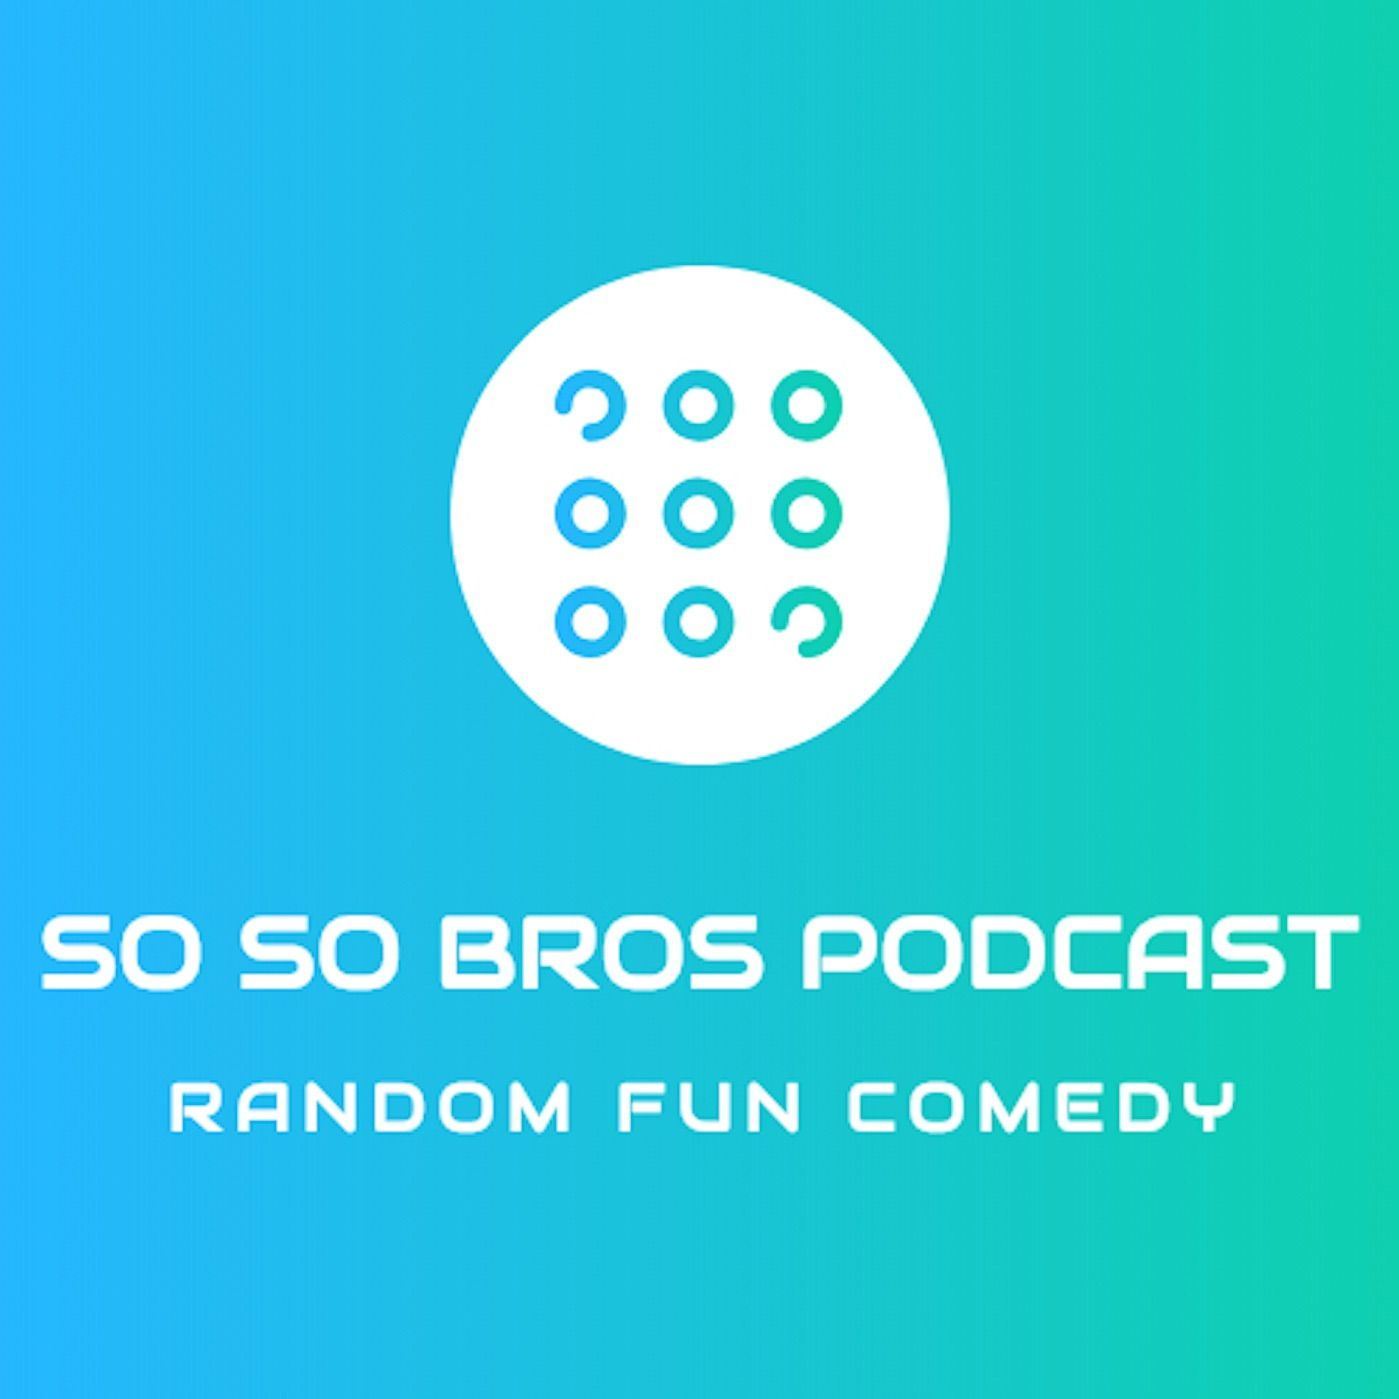 SoSo Bros Podcast 28 - Funny questions, Infinity Saga release, and Randomness